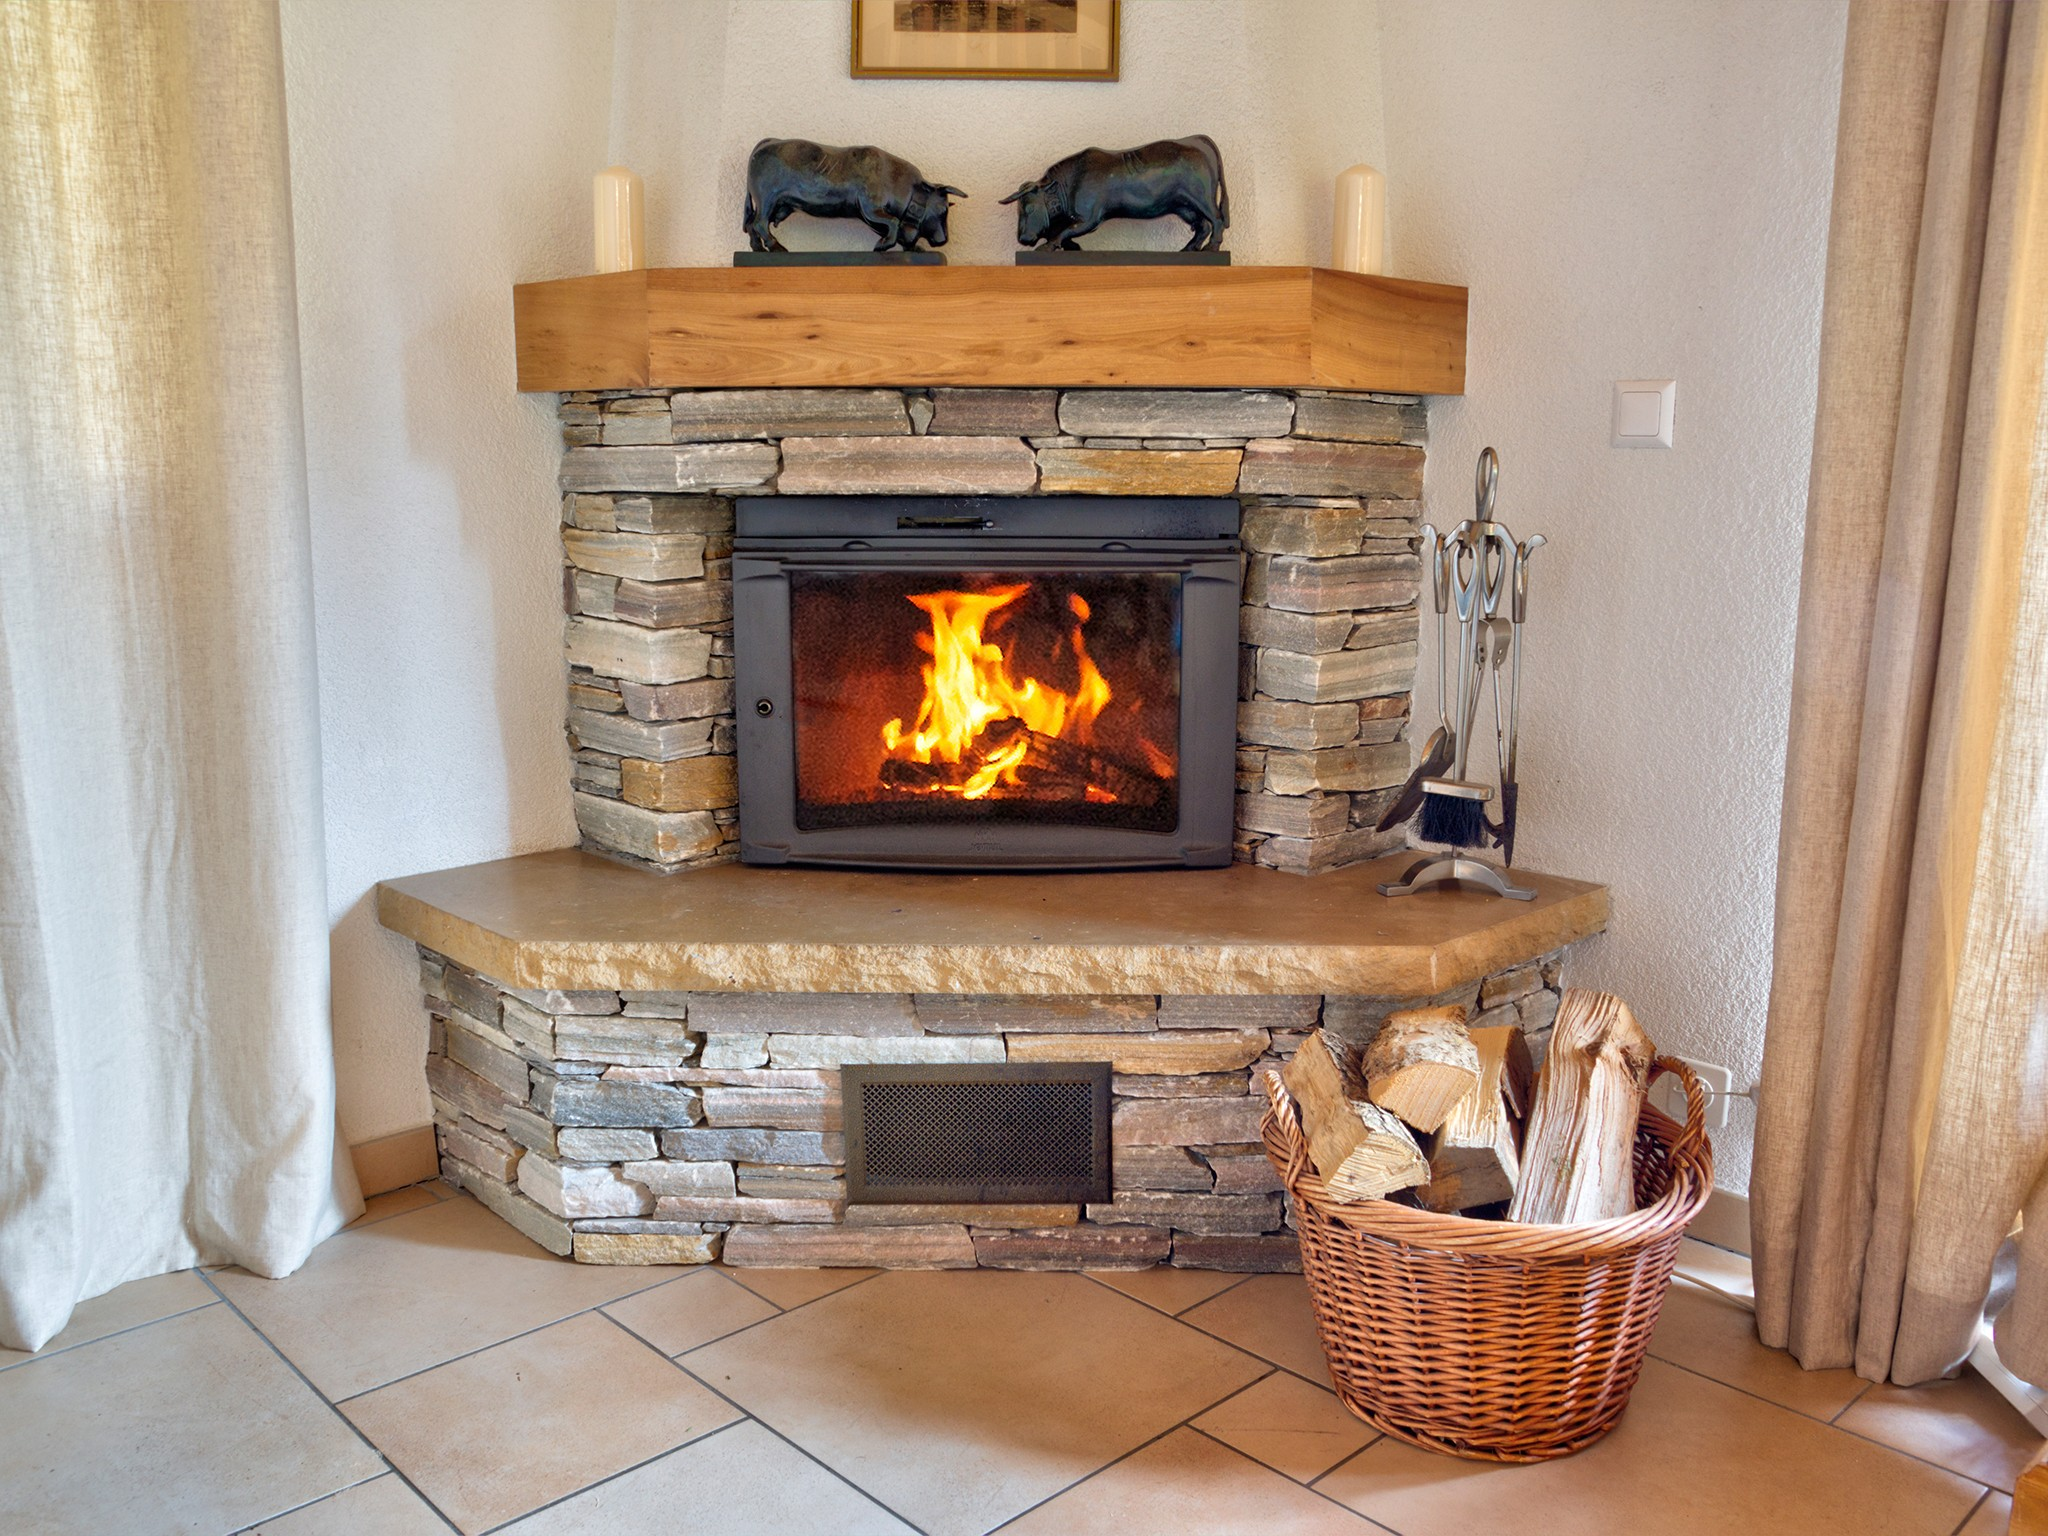 Chalet Collons 1850 - fireplace